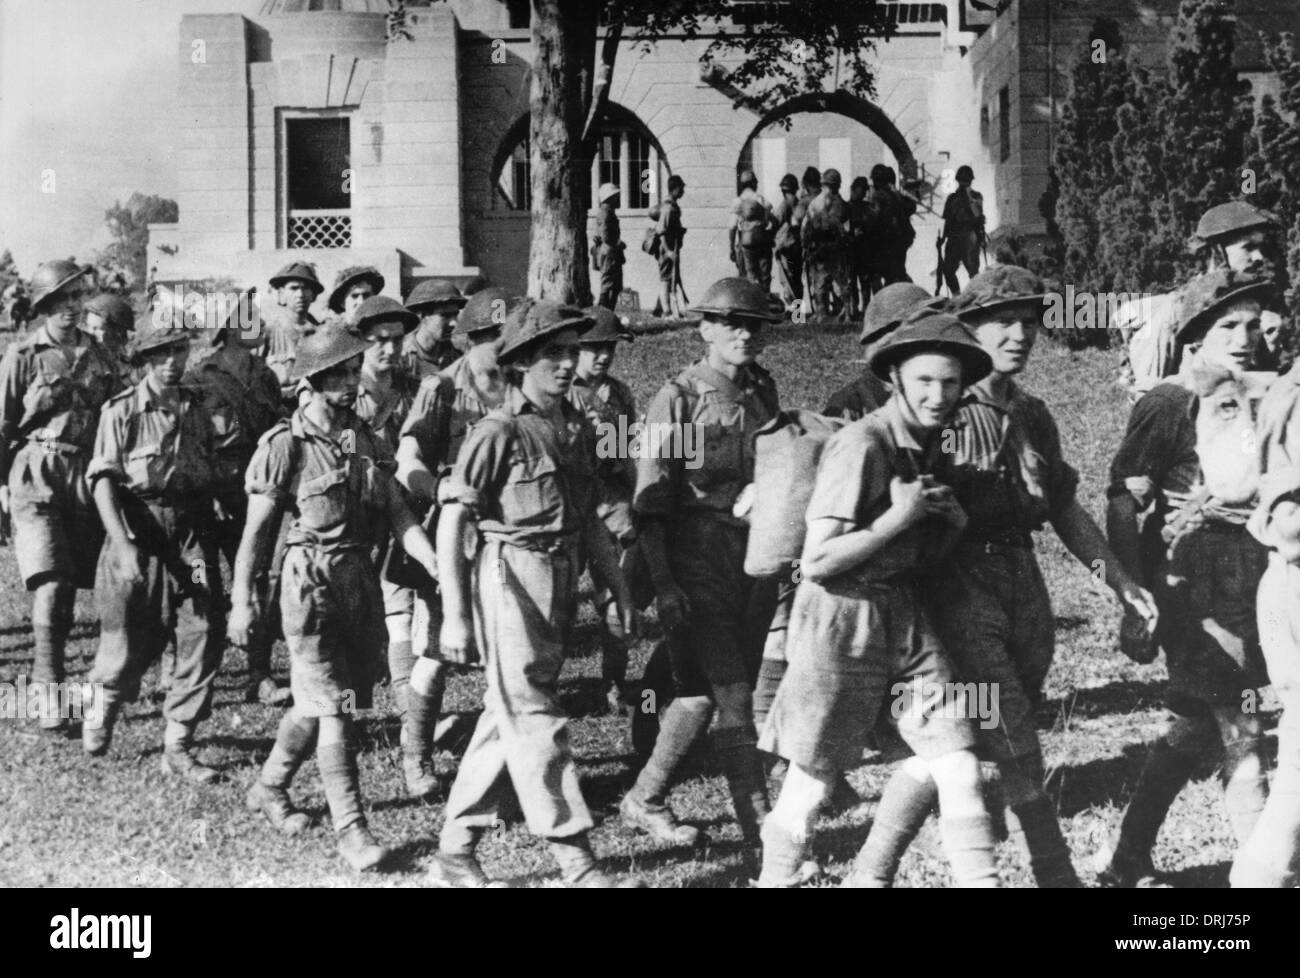 British soldiers after surrender of Singapore, 1942 - Stock Image